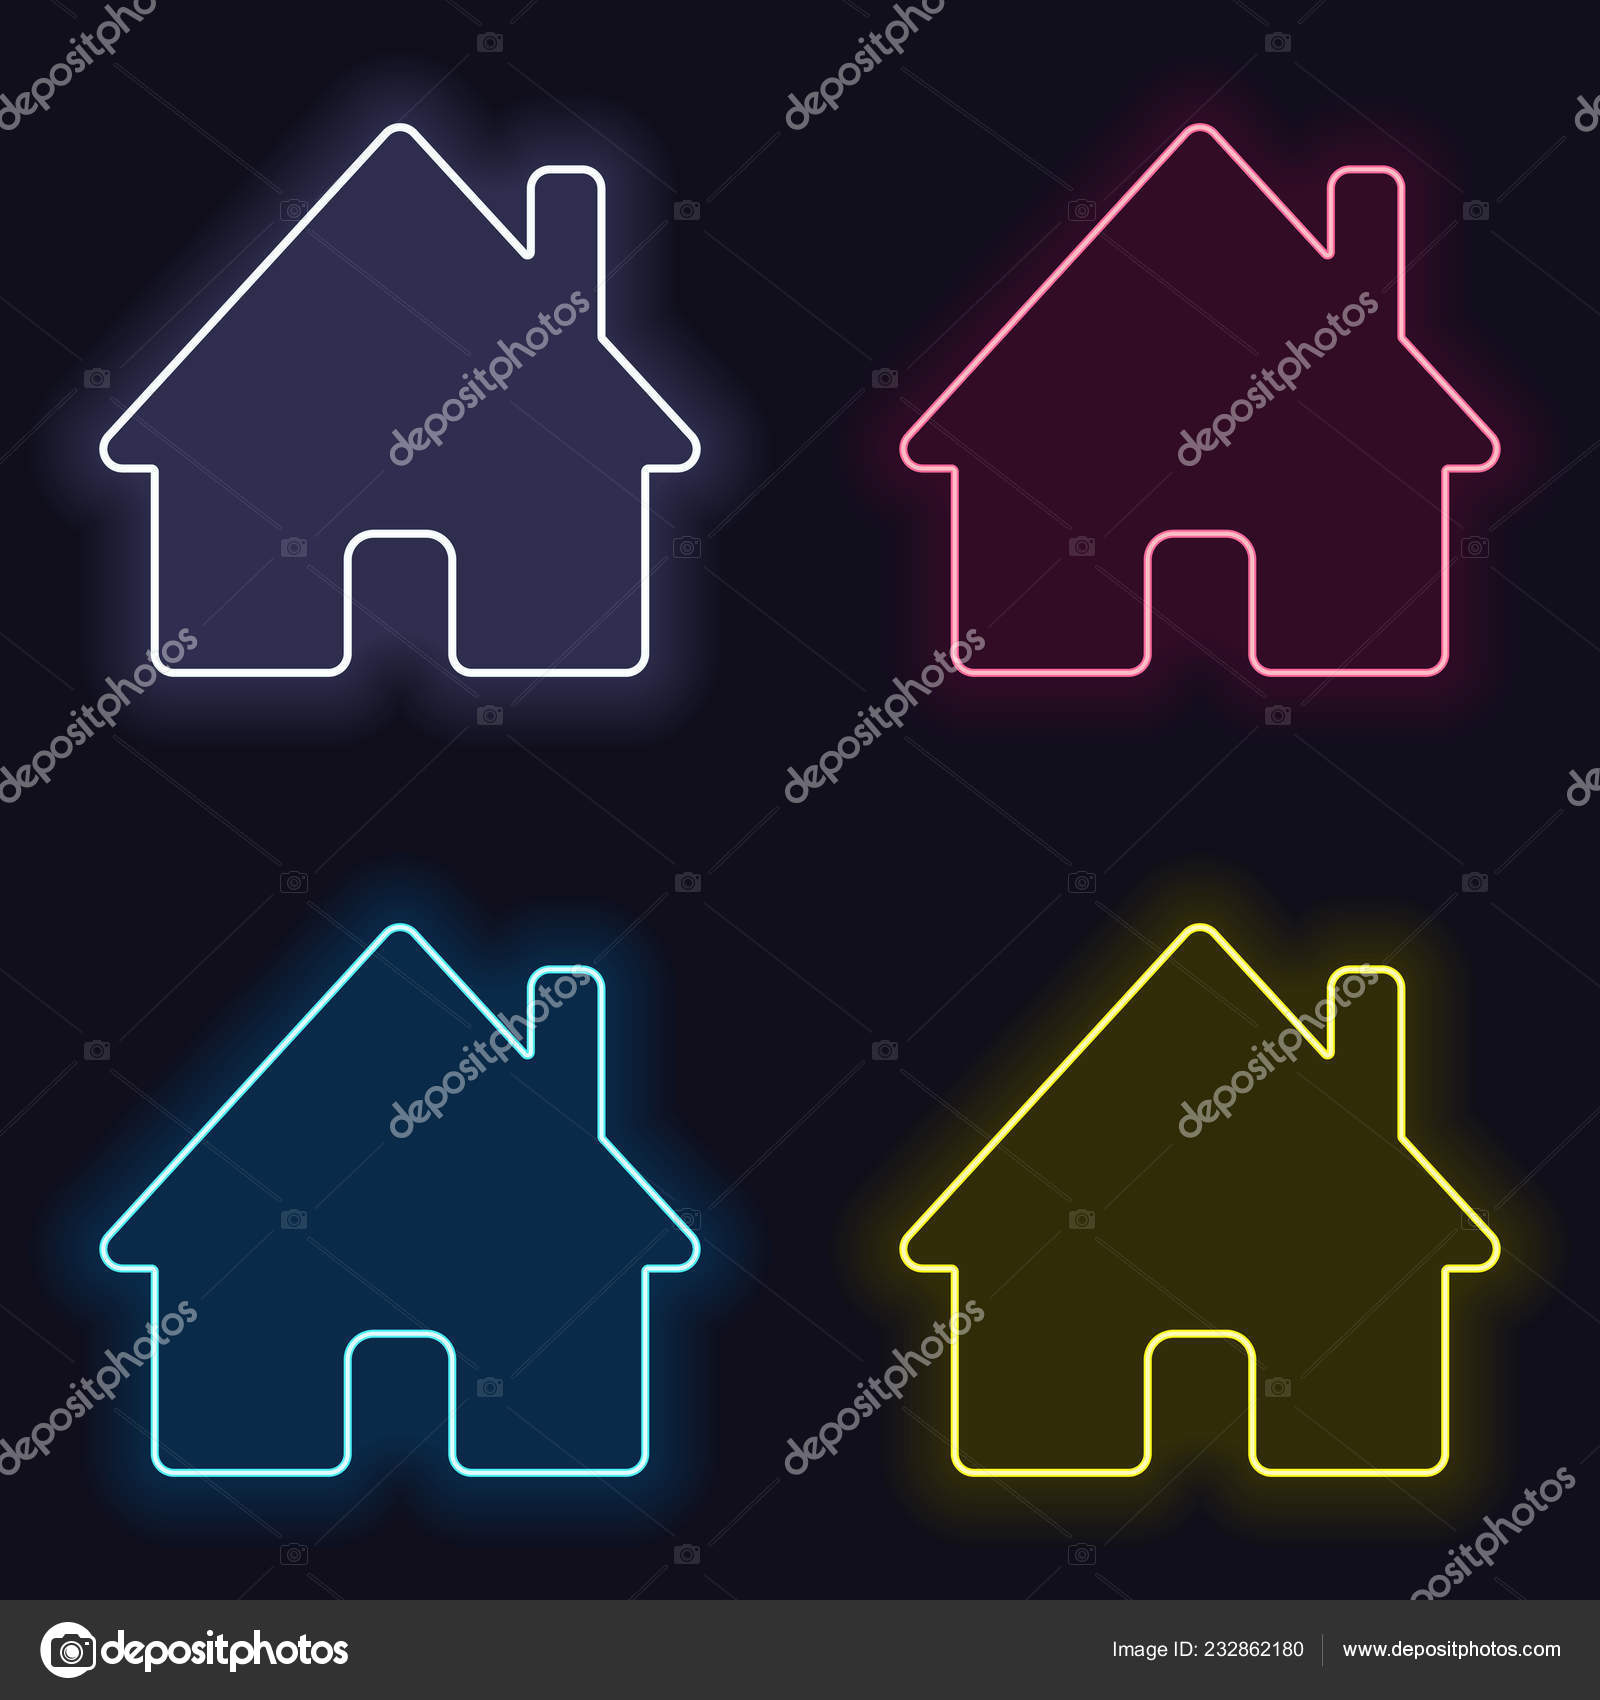 hight resolution of house icon set fashion neon sign casino style dark background stock vector